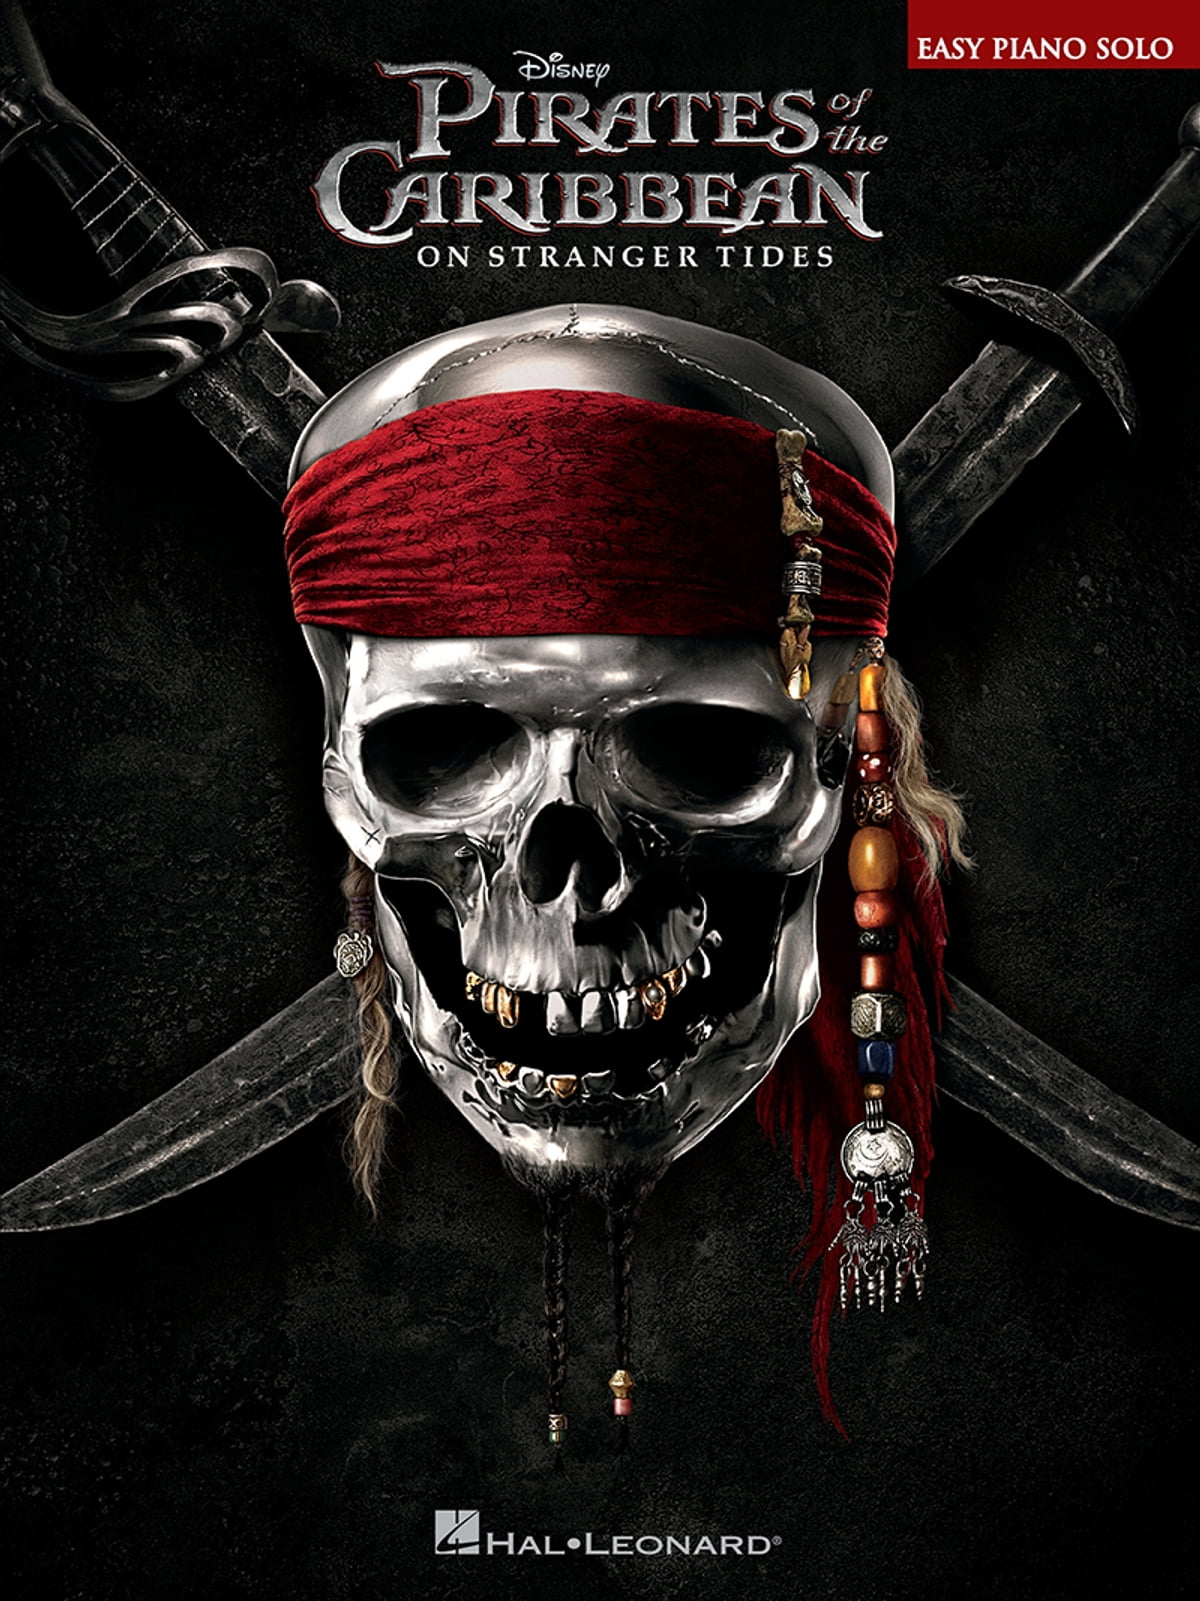 The Pirates of the Caribbean - On Stranger Tides (Songbook) ebook by Hans  Zimmer - Rakuten Kobo